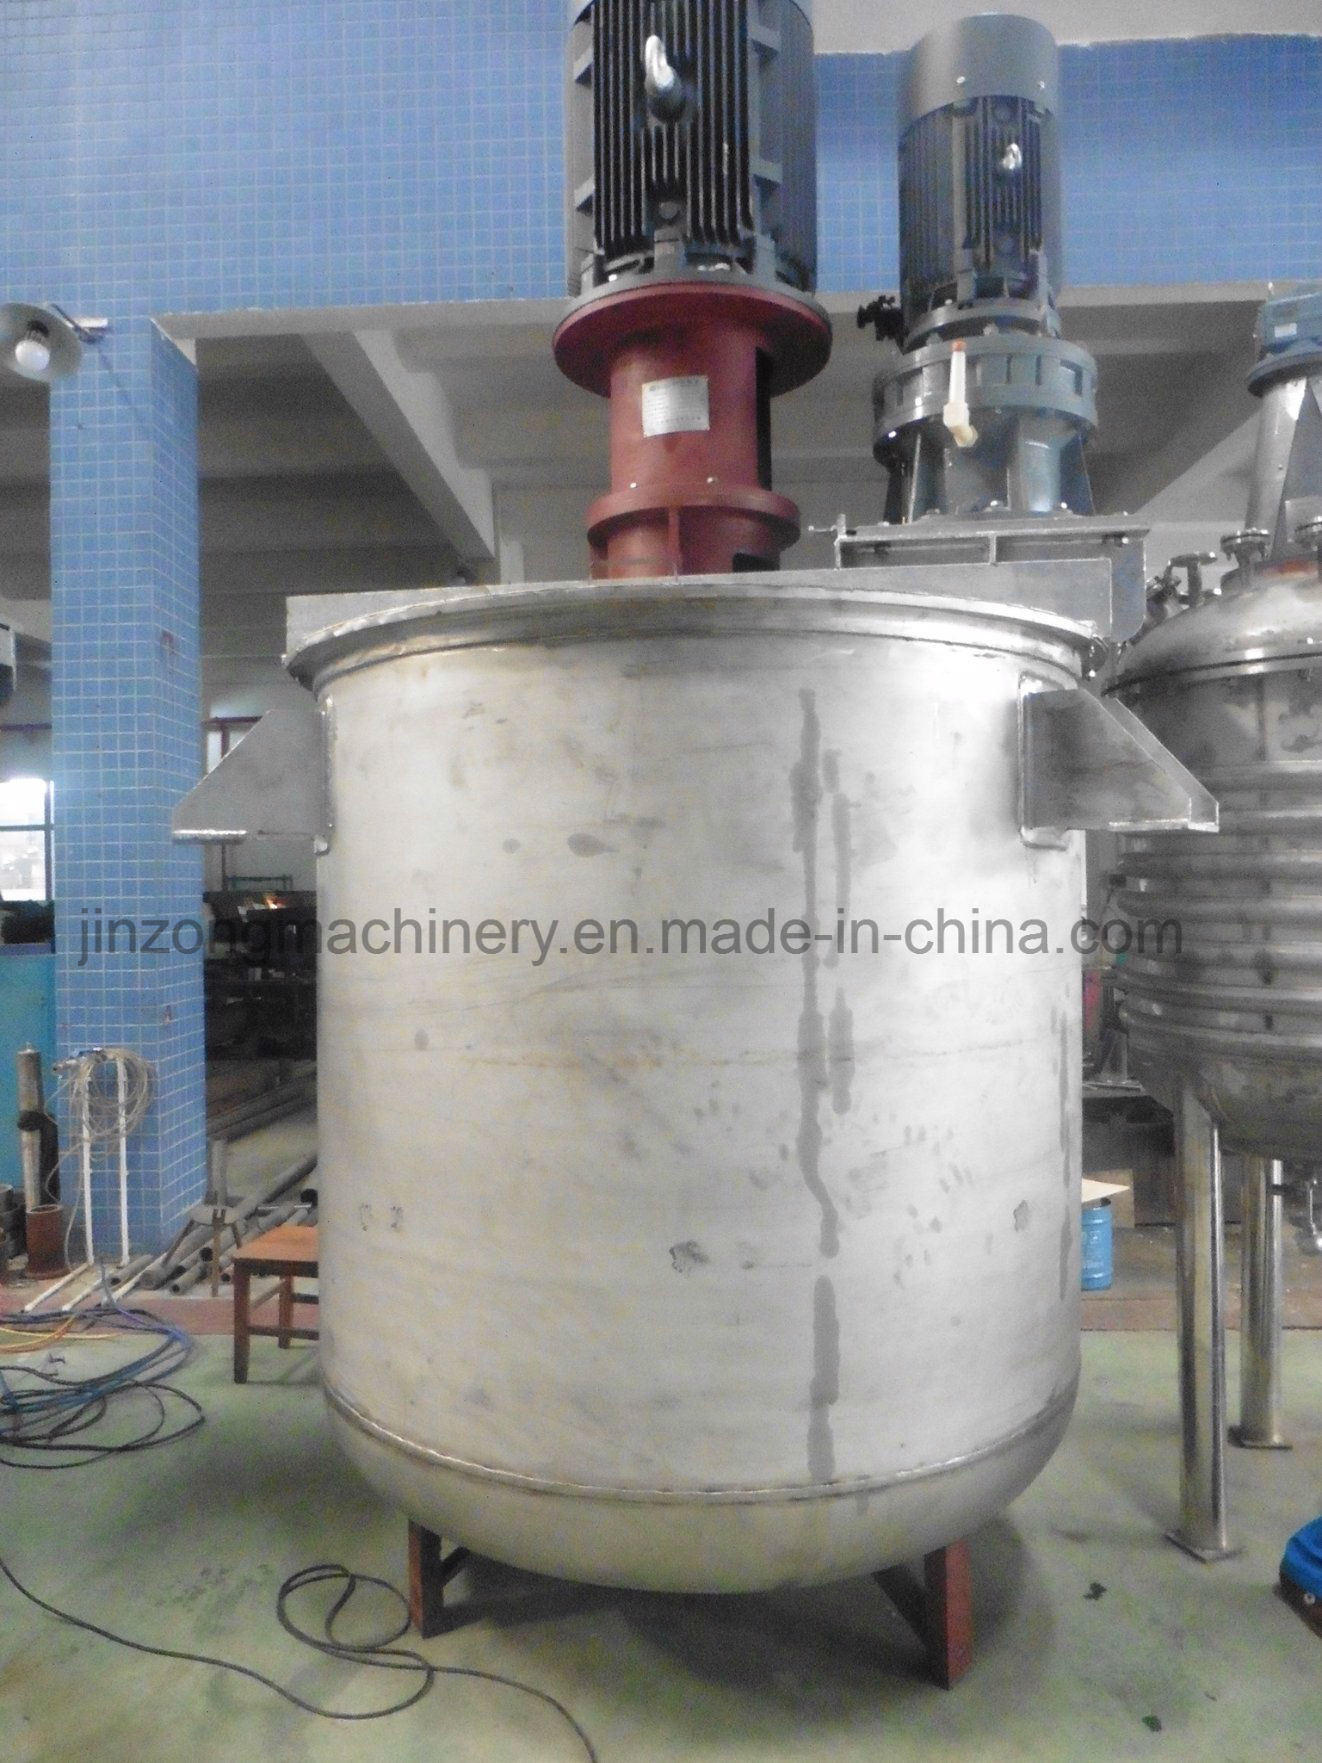 High Speed Dispersion Mixer for High Viscosity Paint, Coating, Chemcial